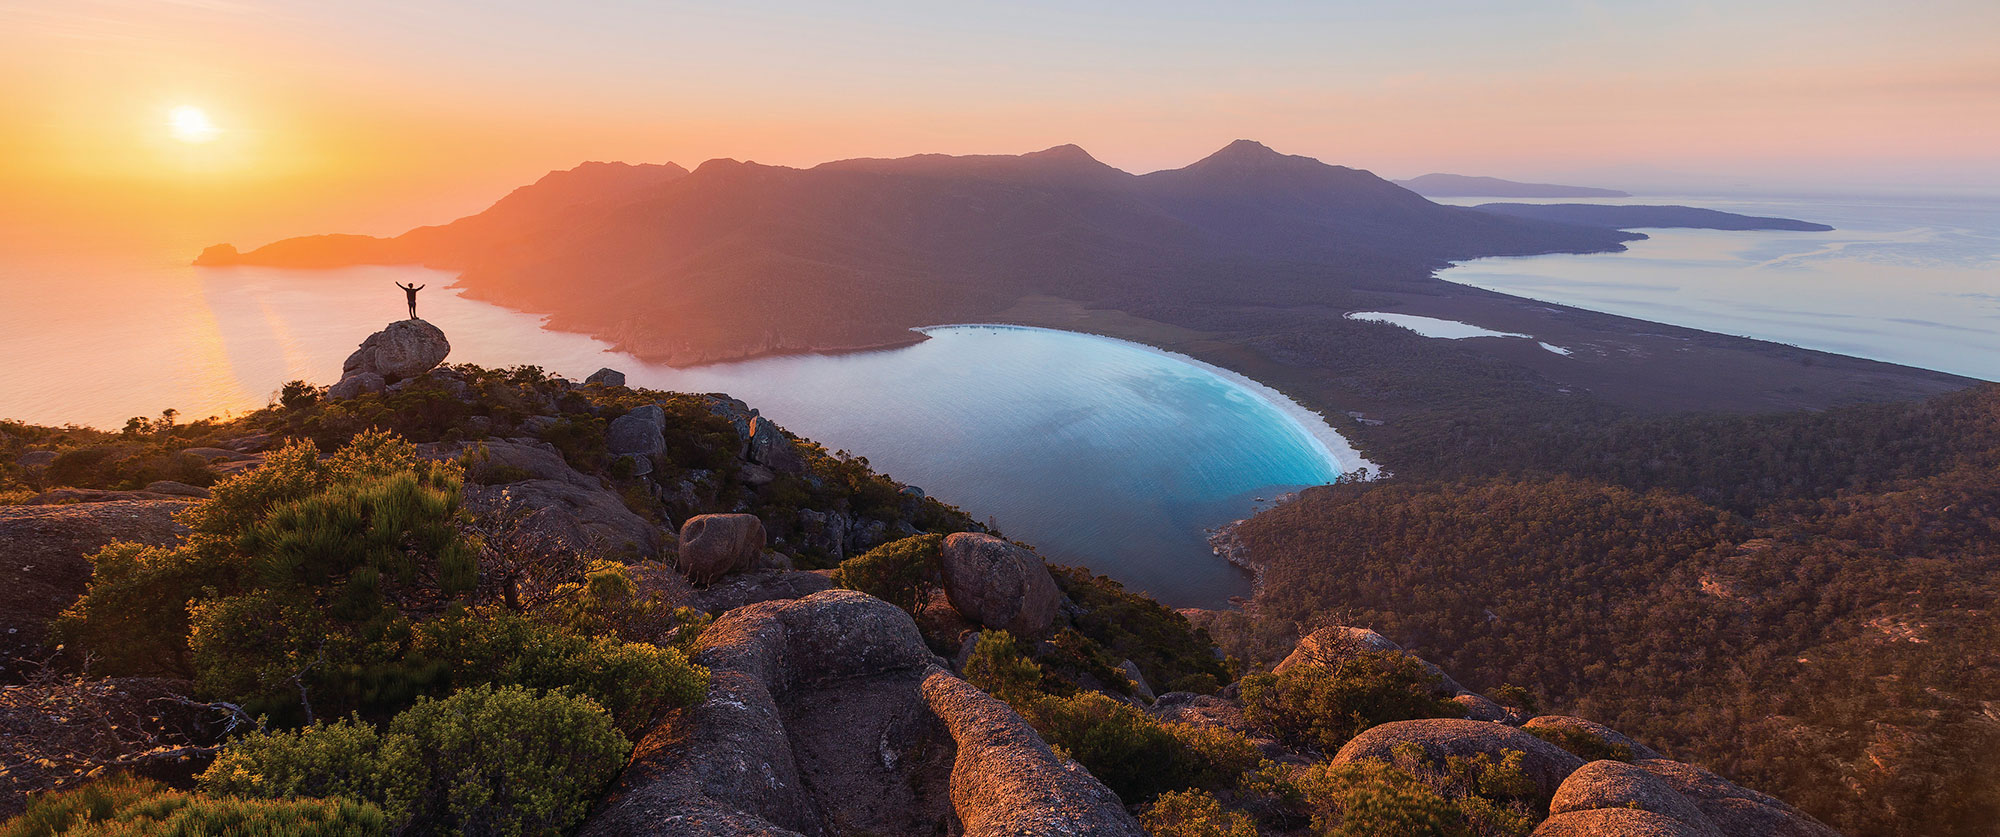 Honeymoon in Australia: Tasmania Outdoor Encounters - Sunrise at Freycinet National Park, Wineglass Bay